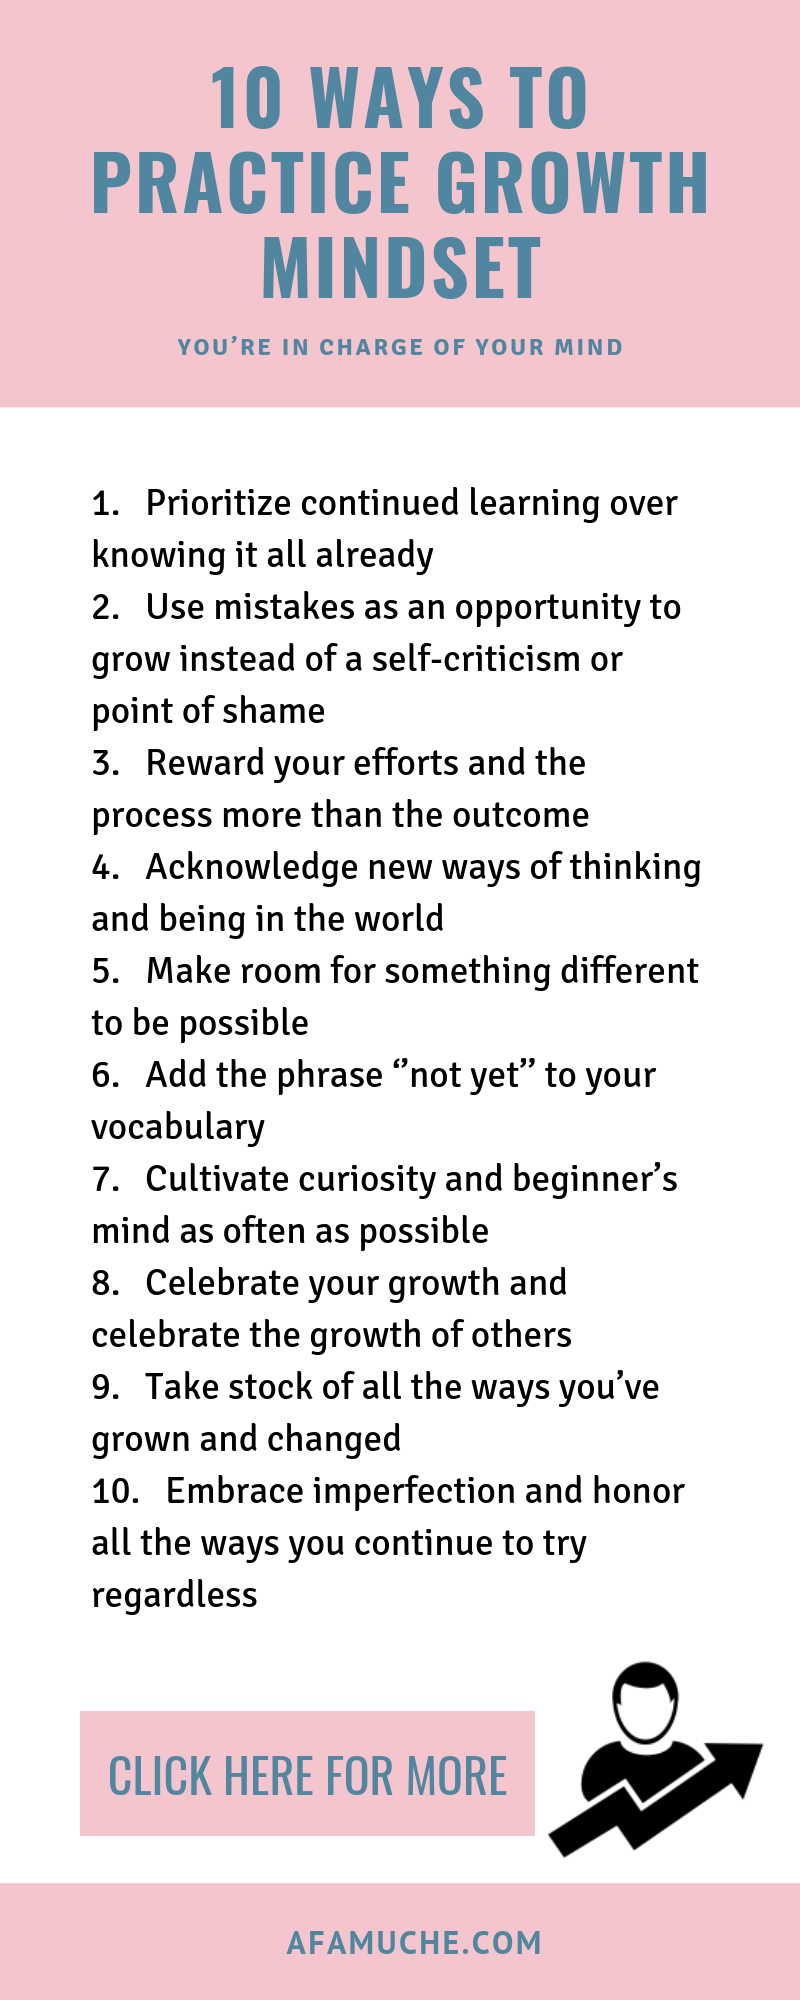 10 Ways to practice  growth mindset Infographic